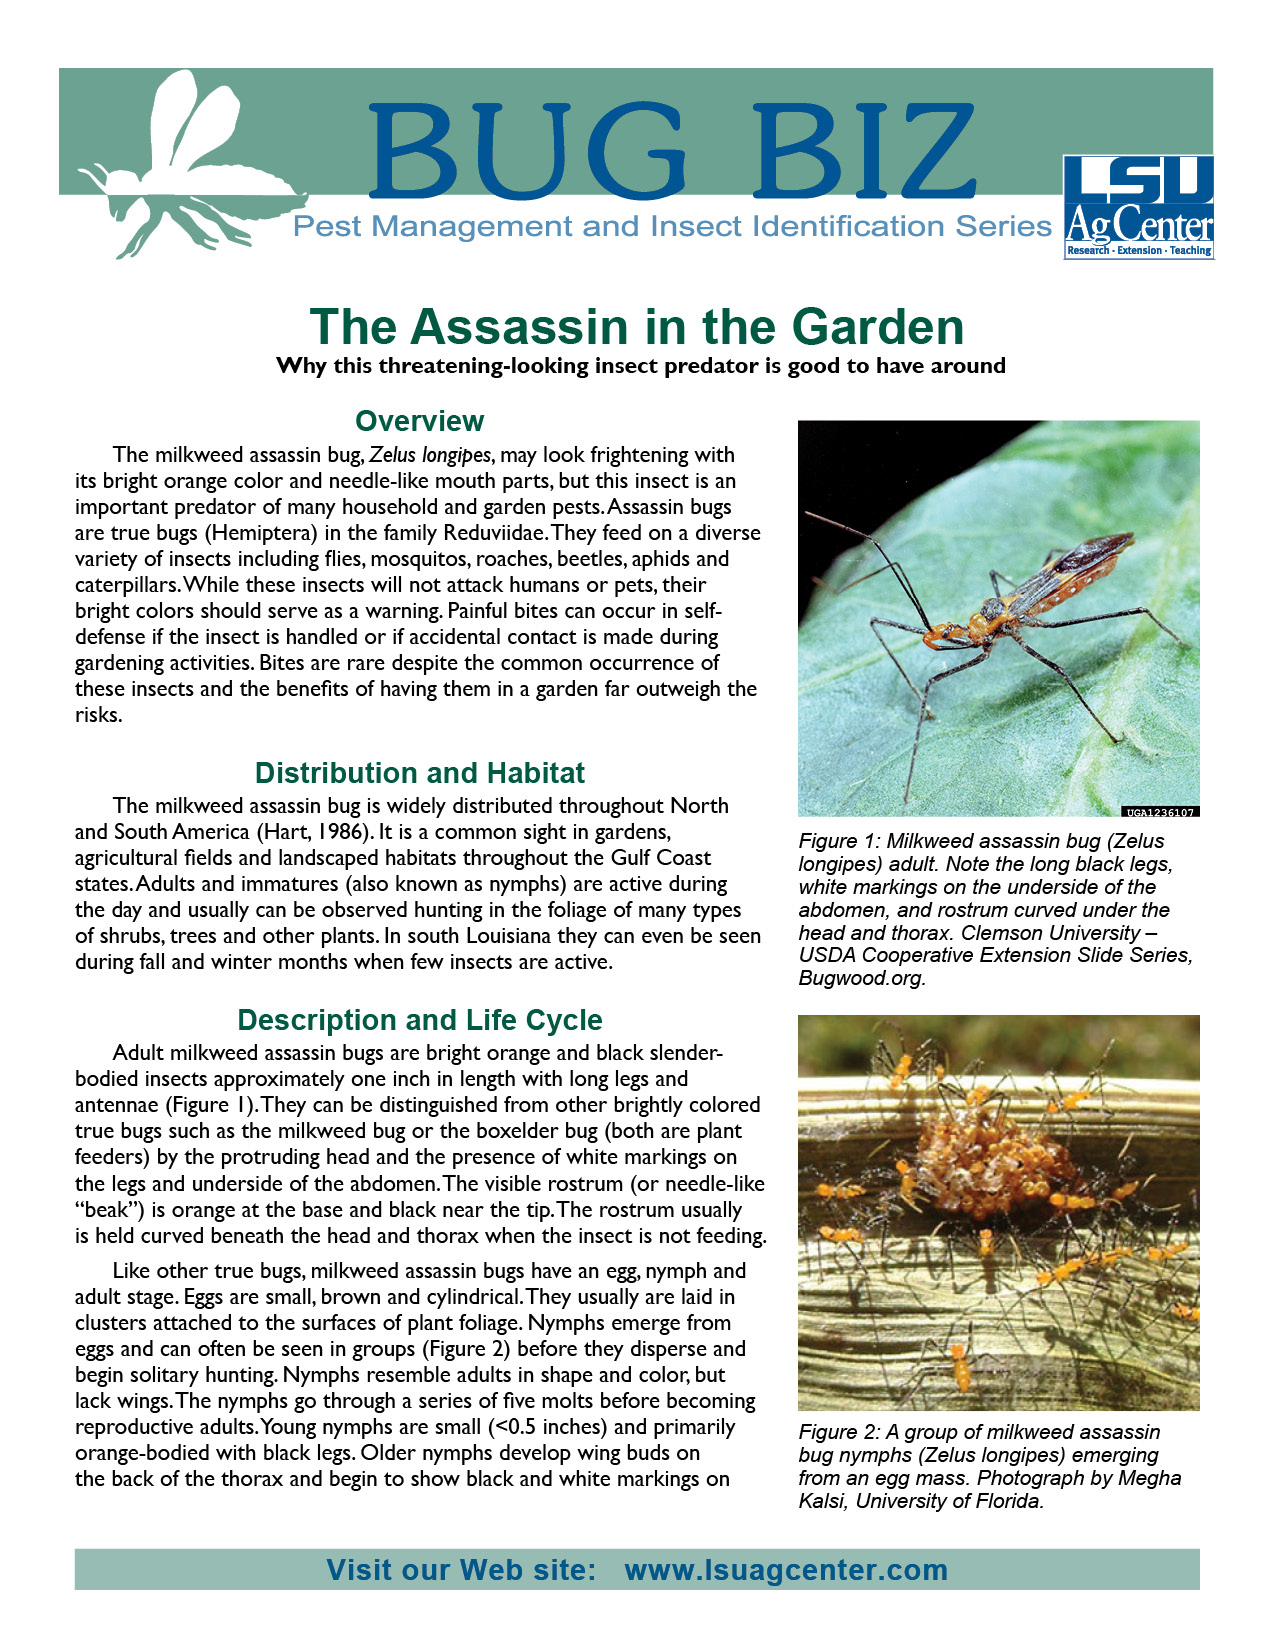 The Assassin in the Garden